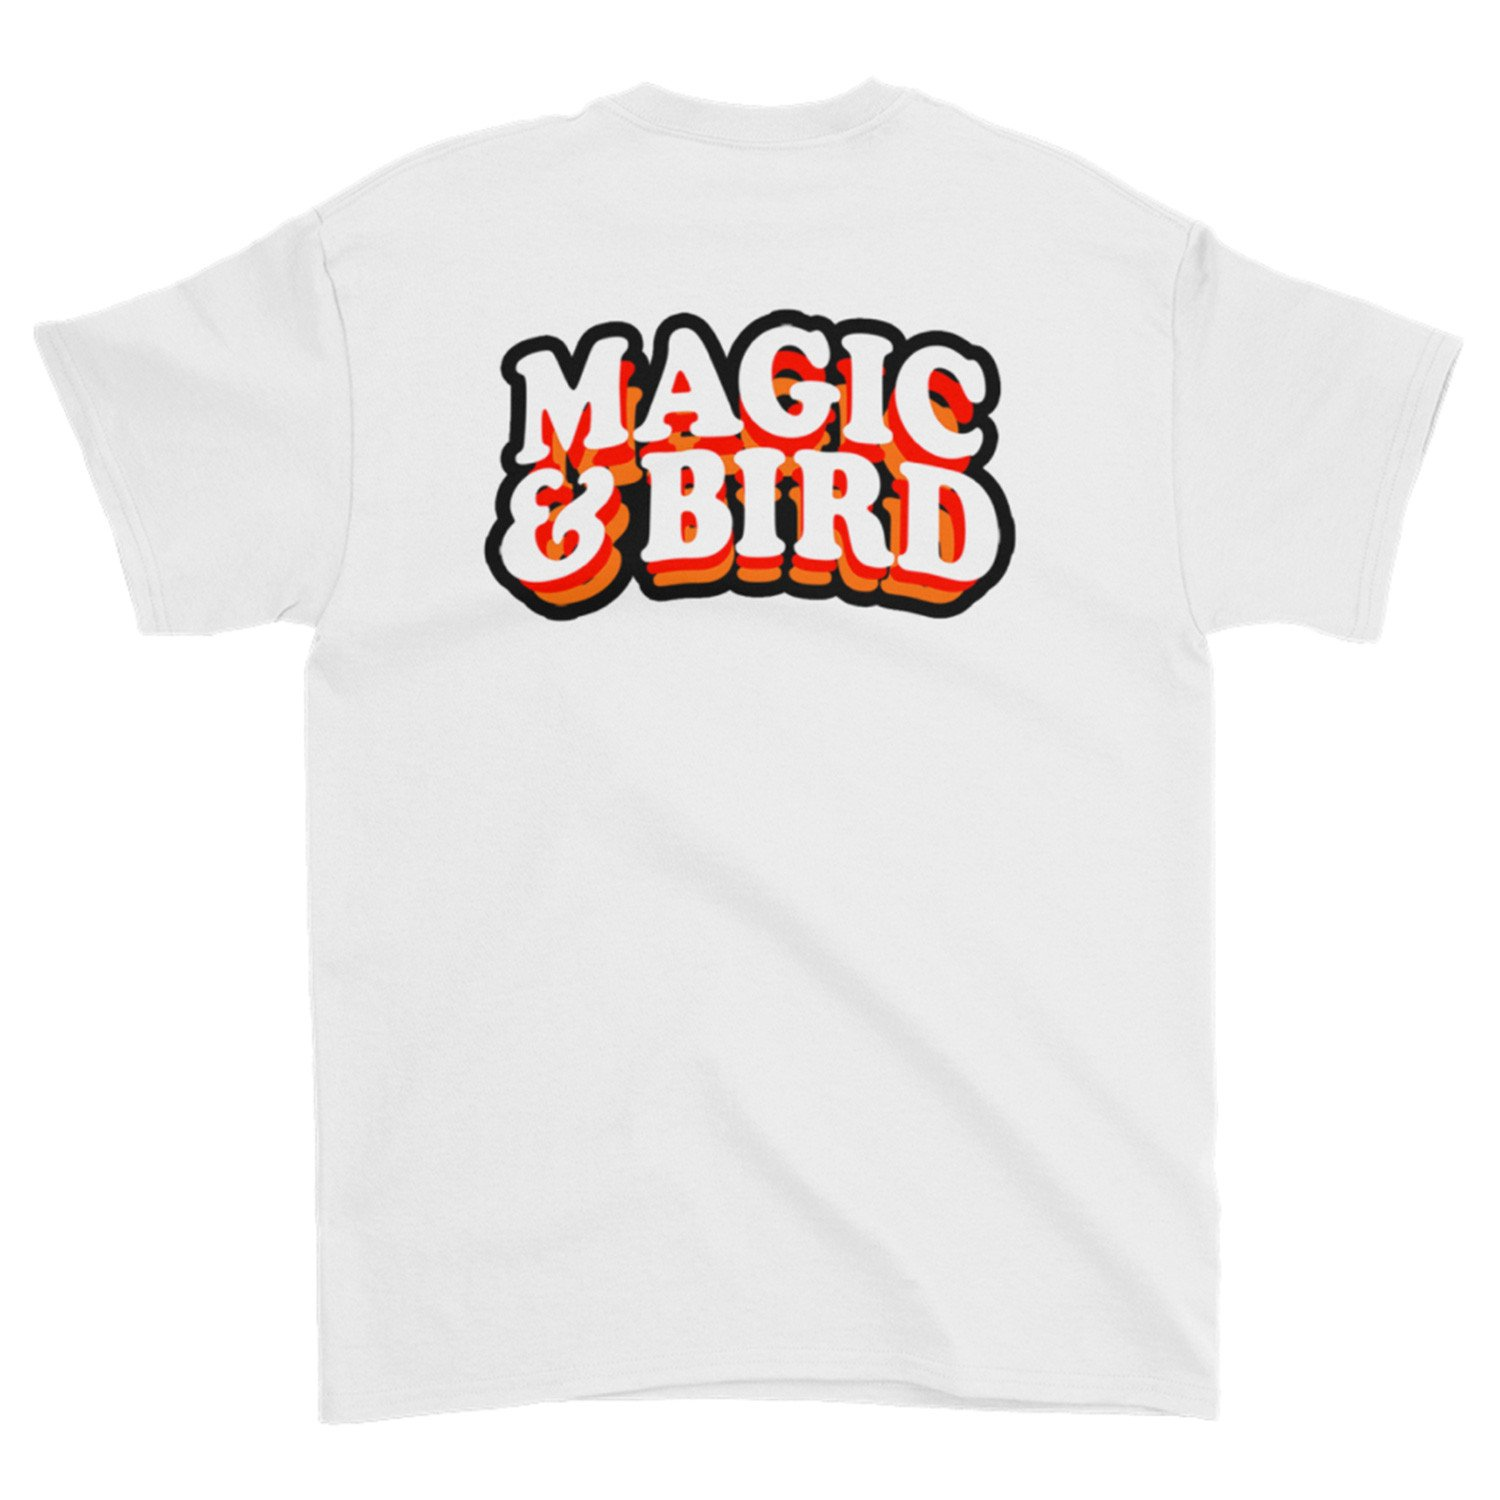 MAGIC_BIRD_tee1-BACK_2000x2000.jpg